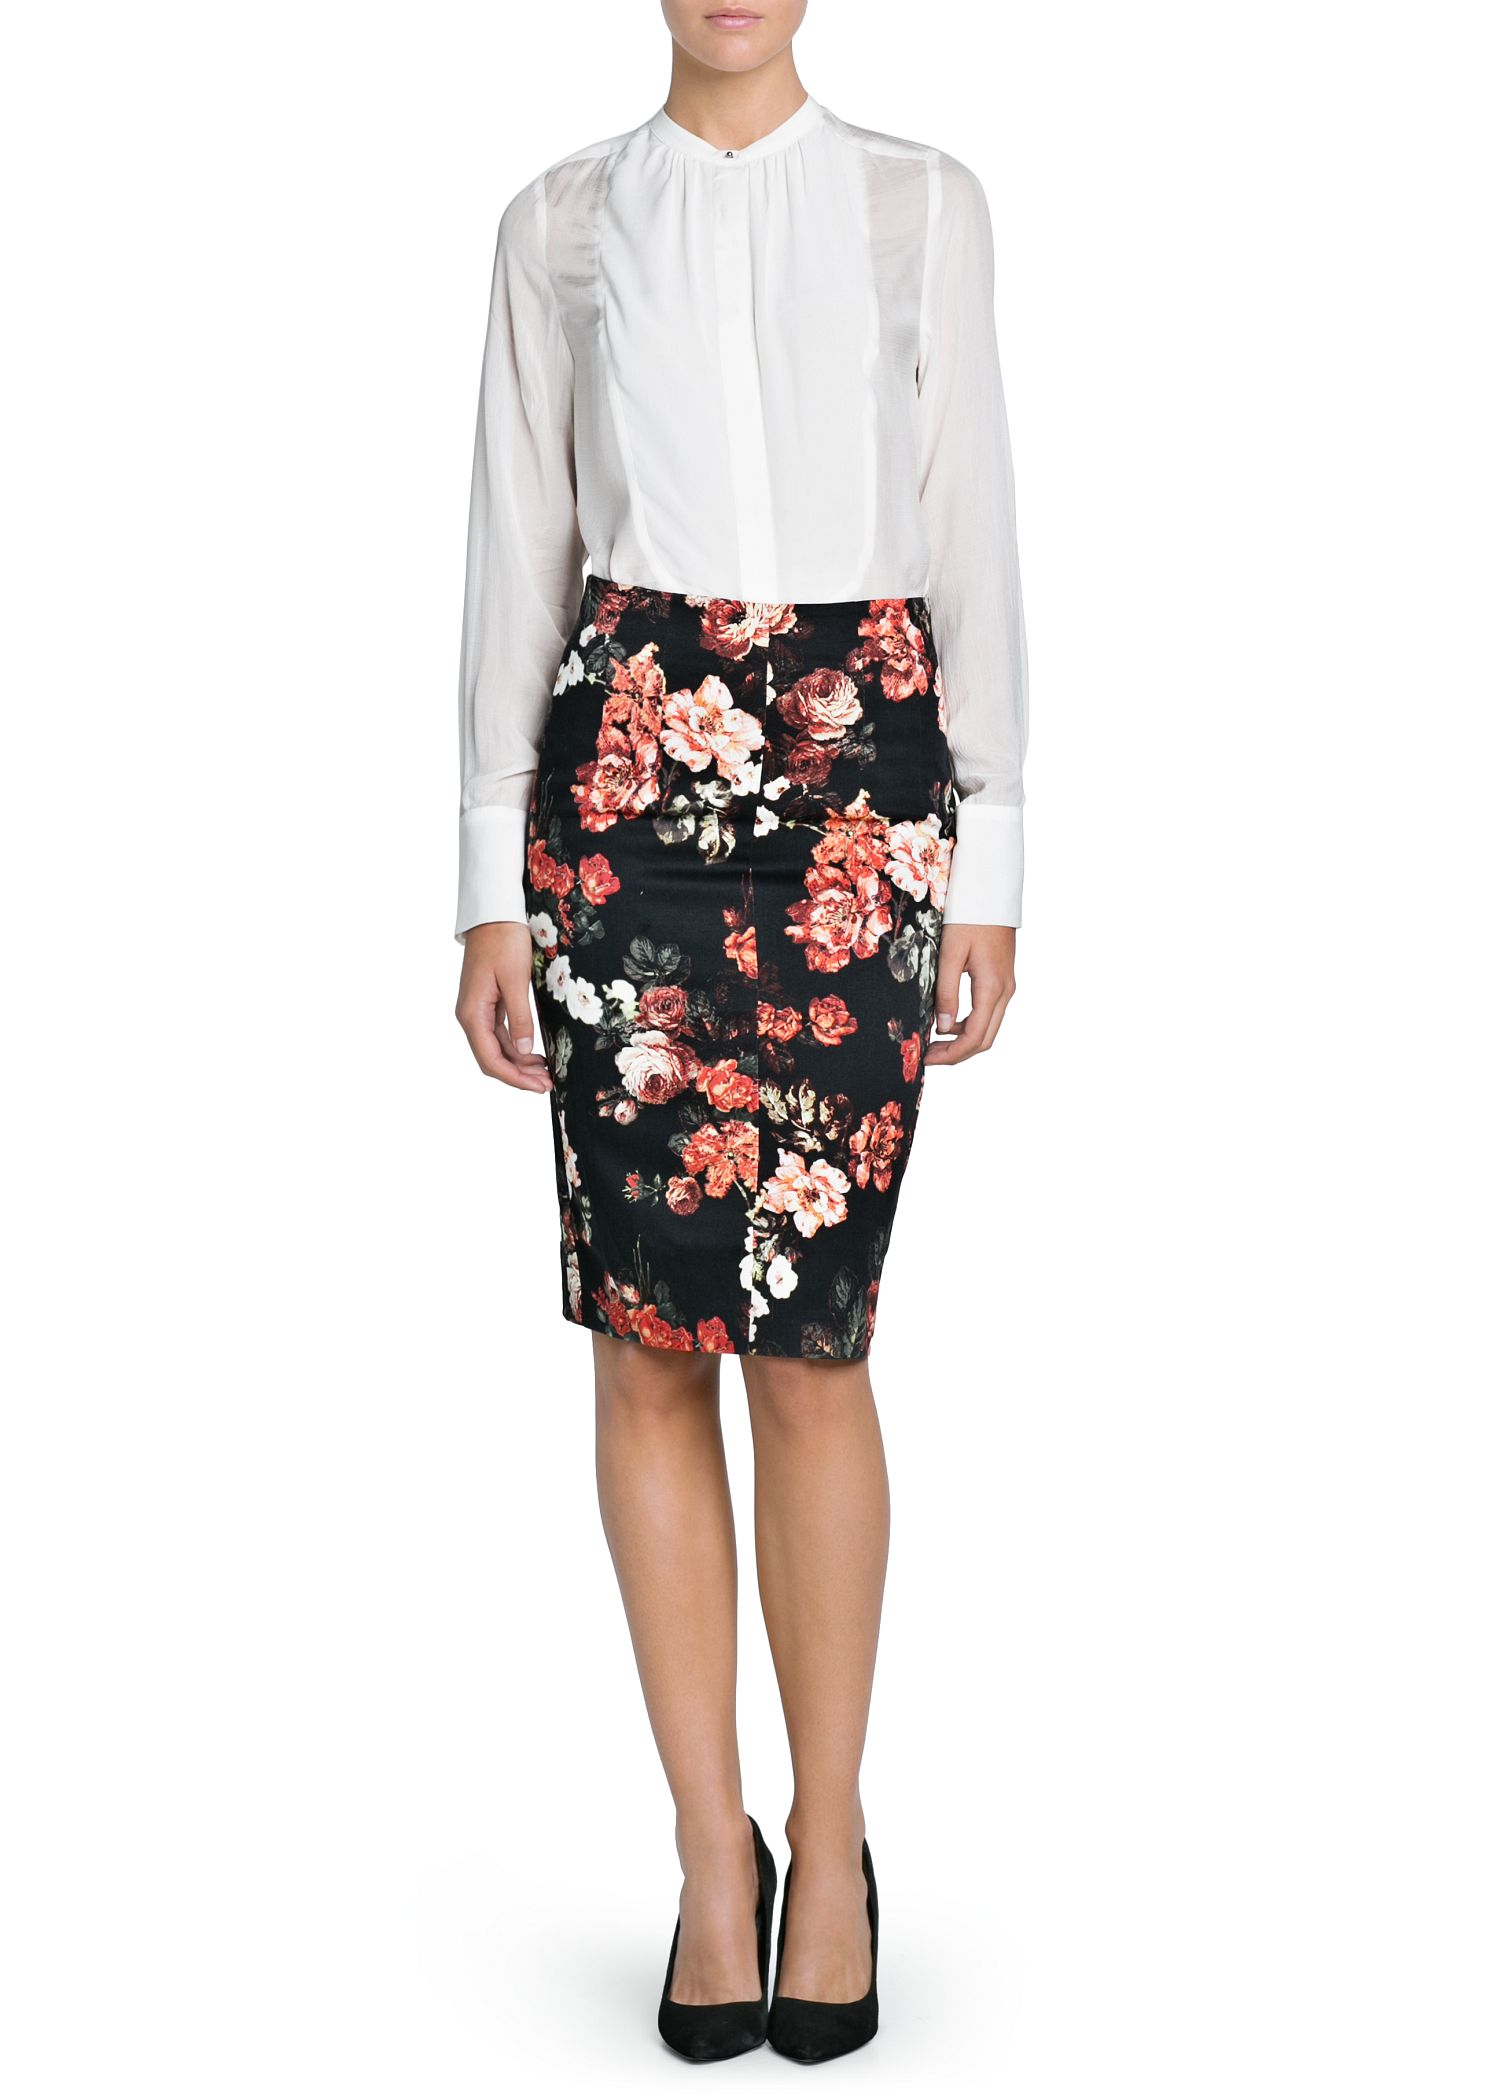 Mango Floral Print Pencil Skirt in Black | Lyst